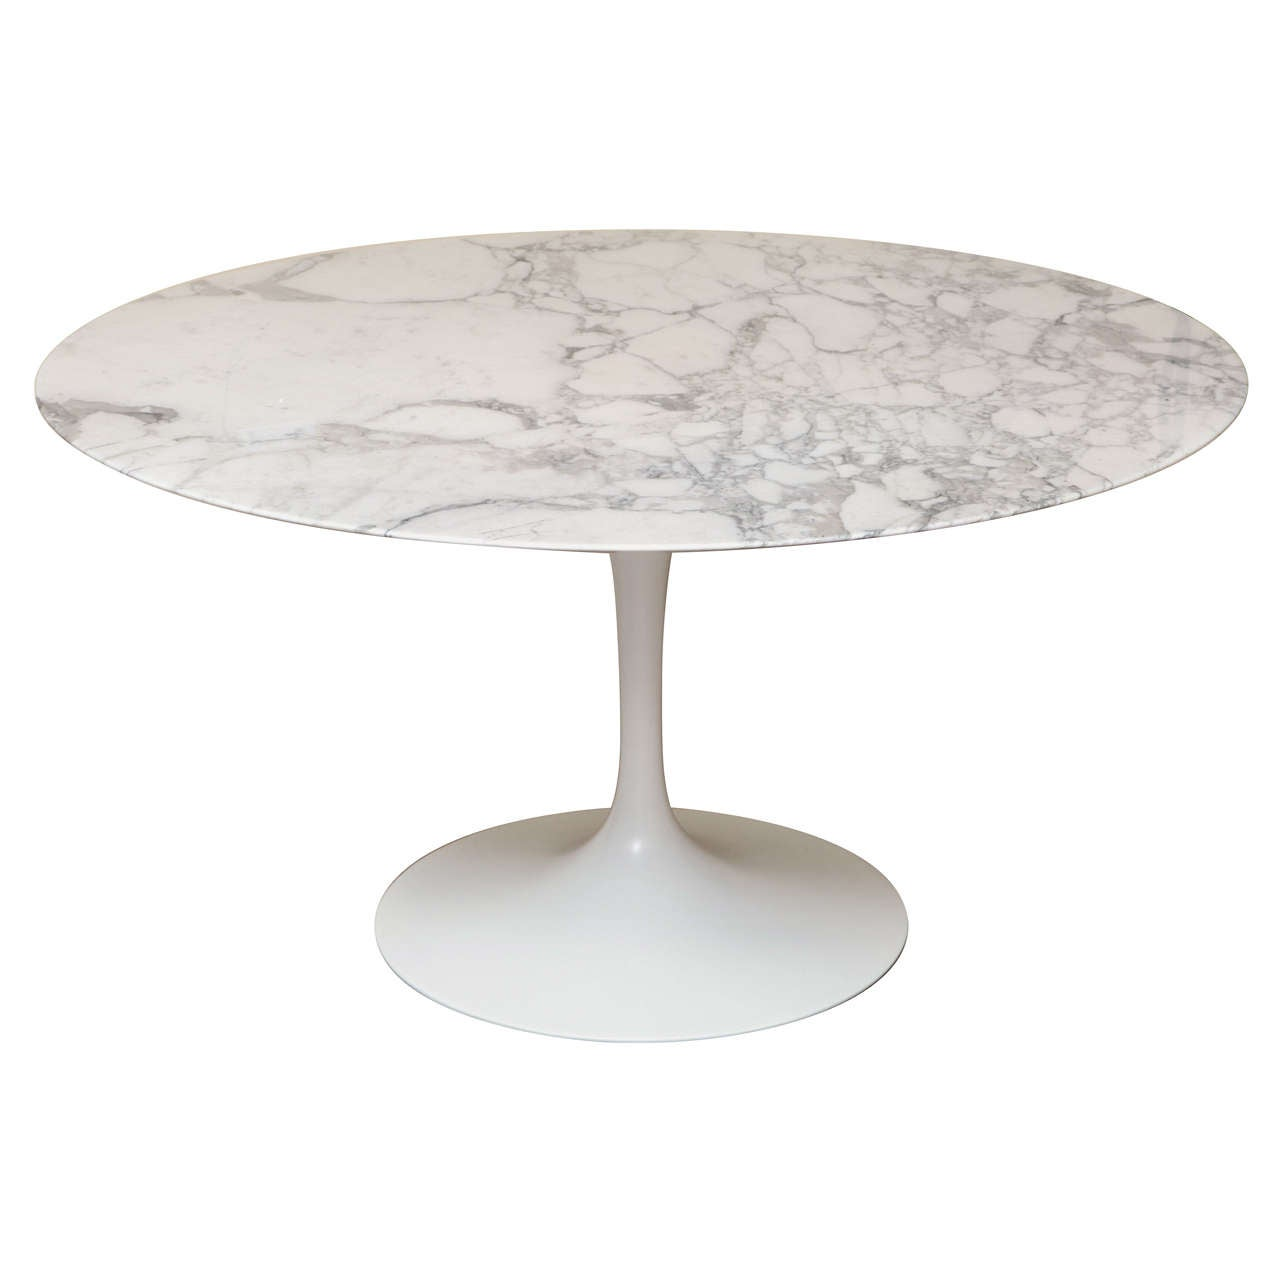 round marble top saarinen dining table at stdibs - round marble top saarinen dining table